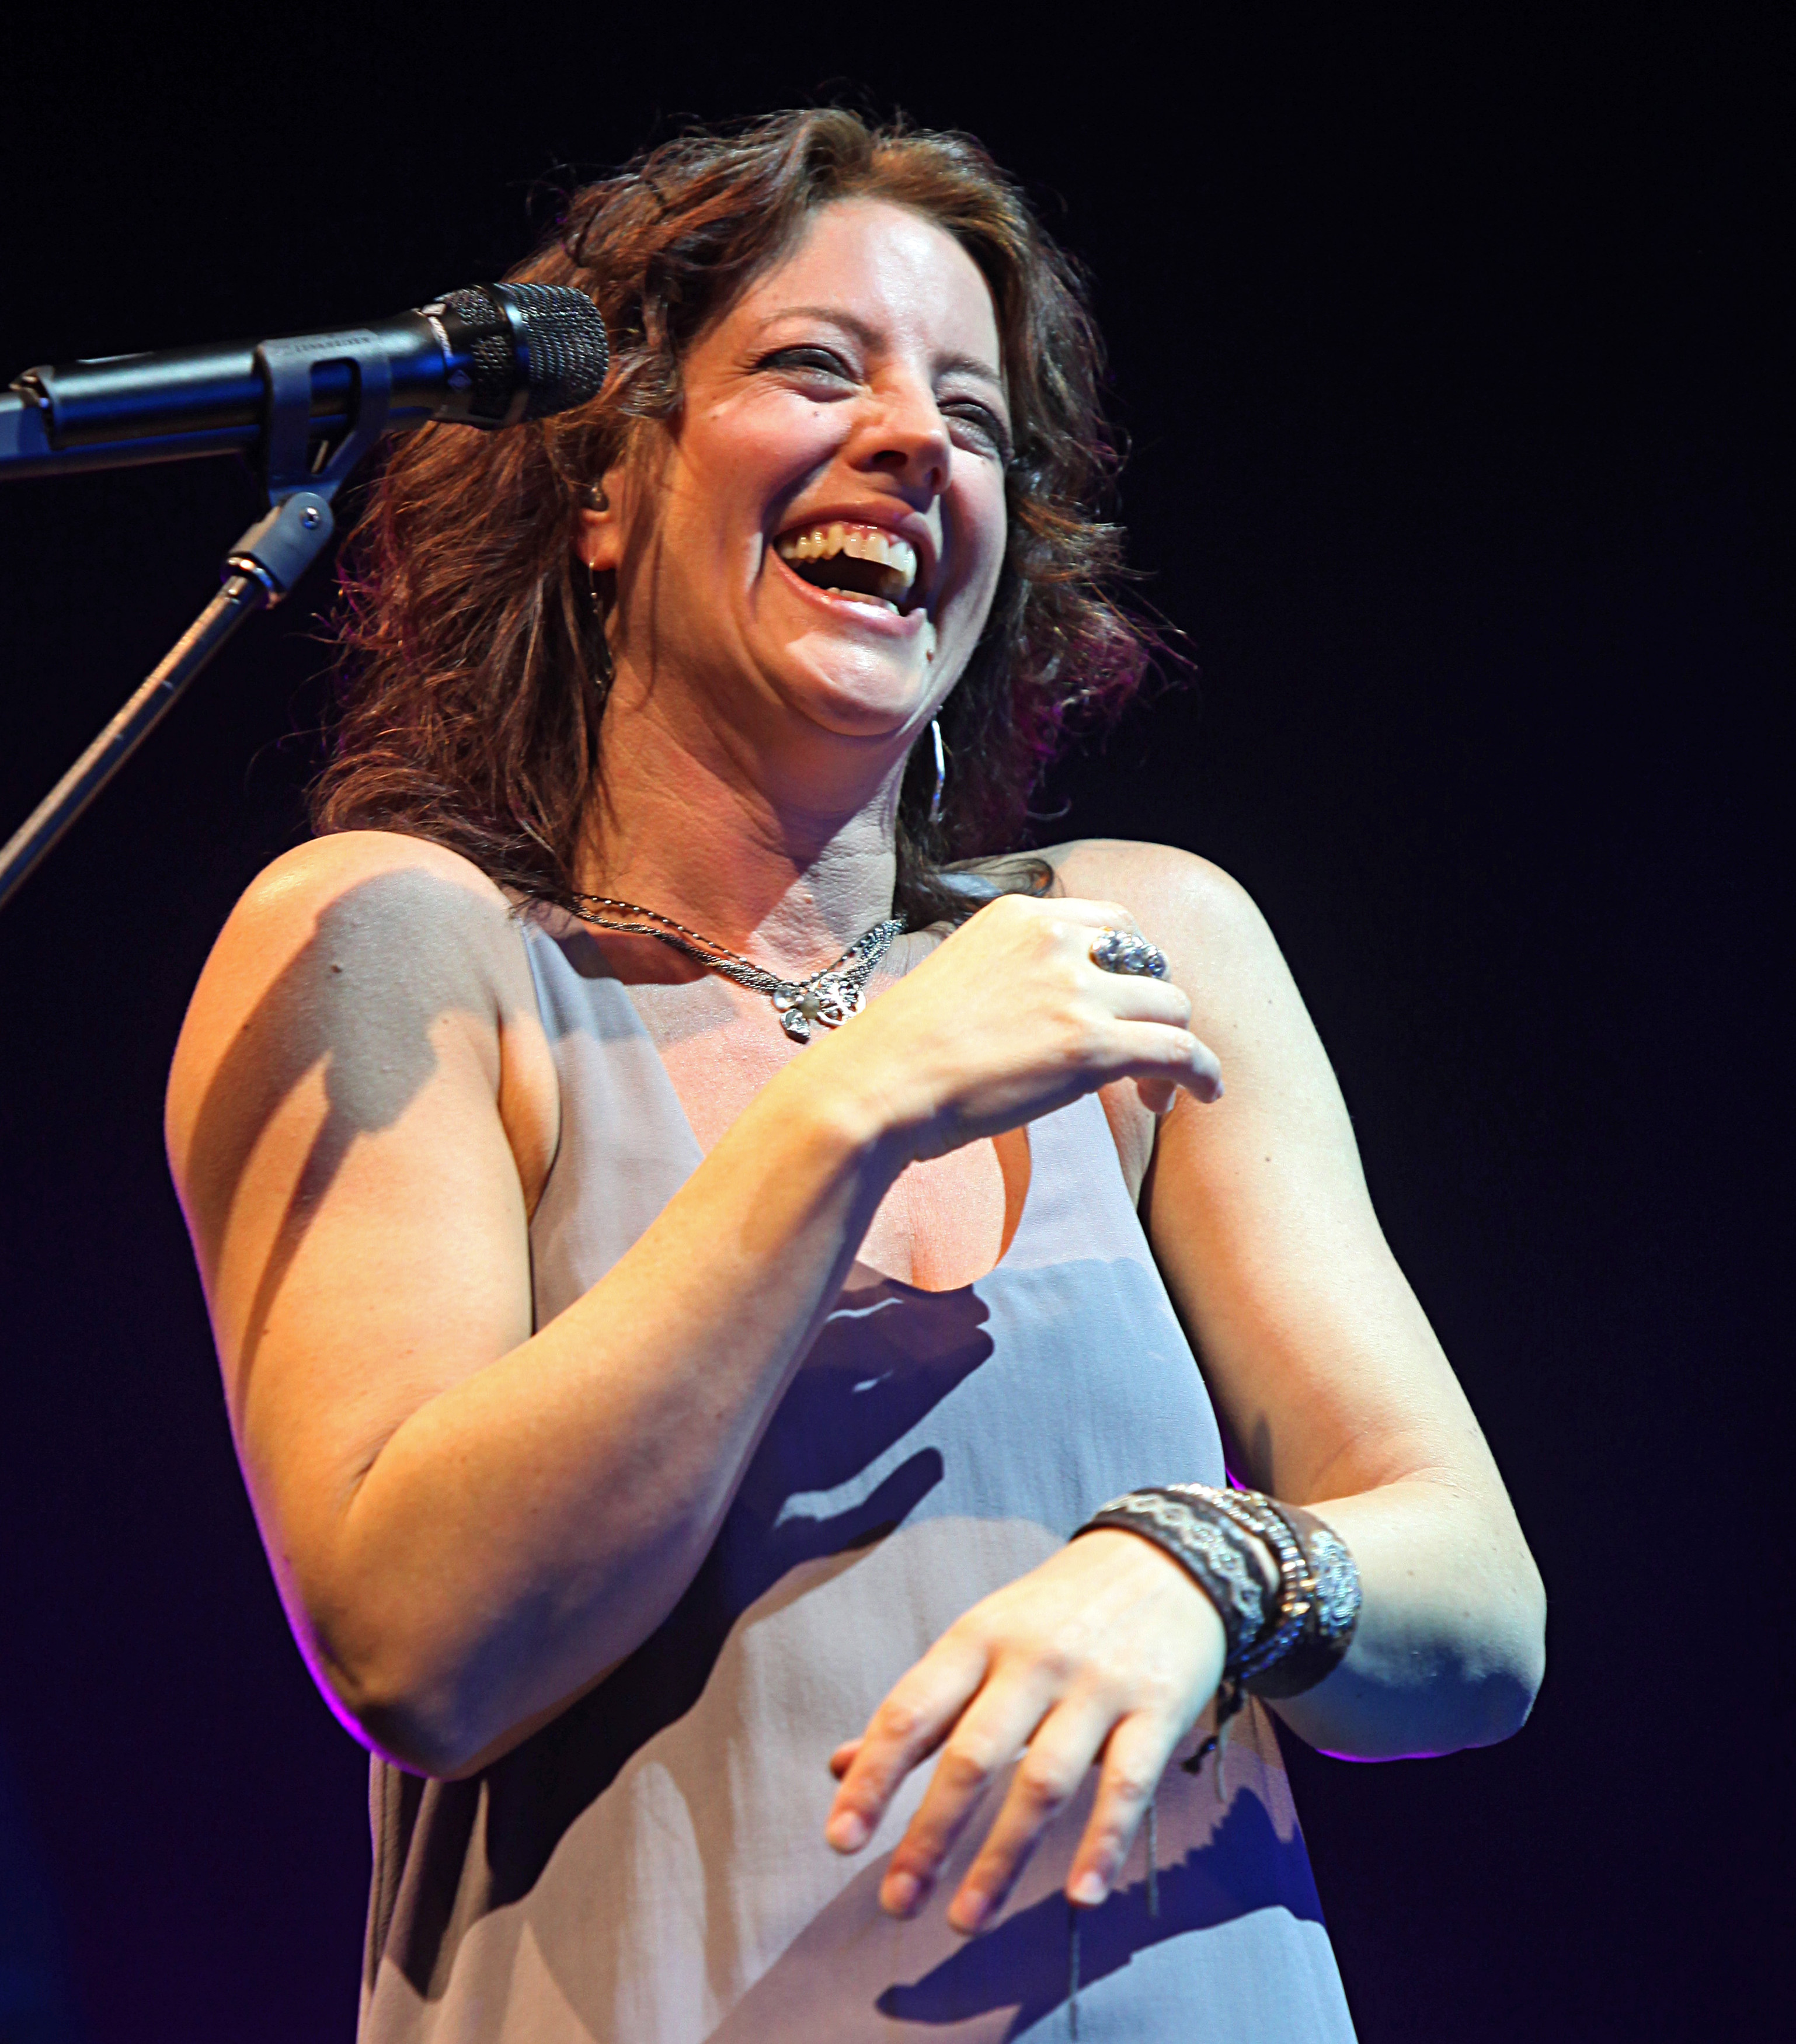 Concert Sarah Mclachlan